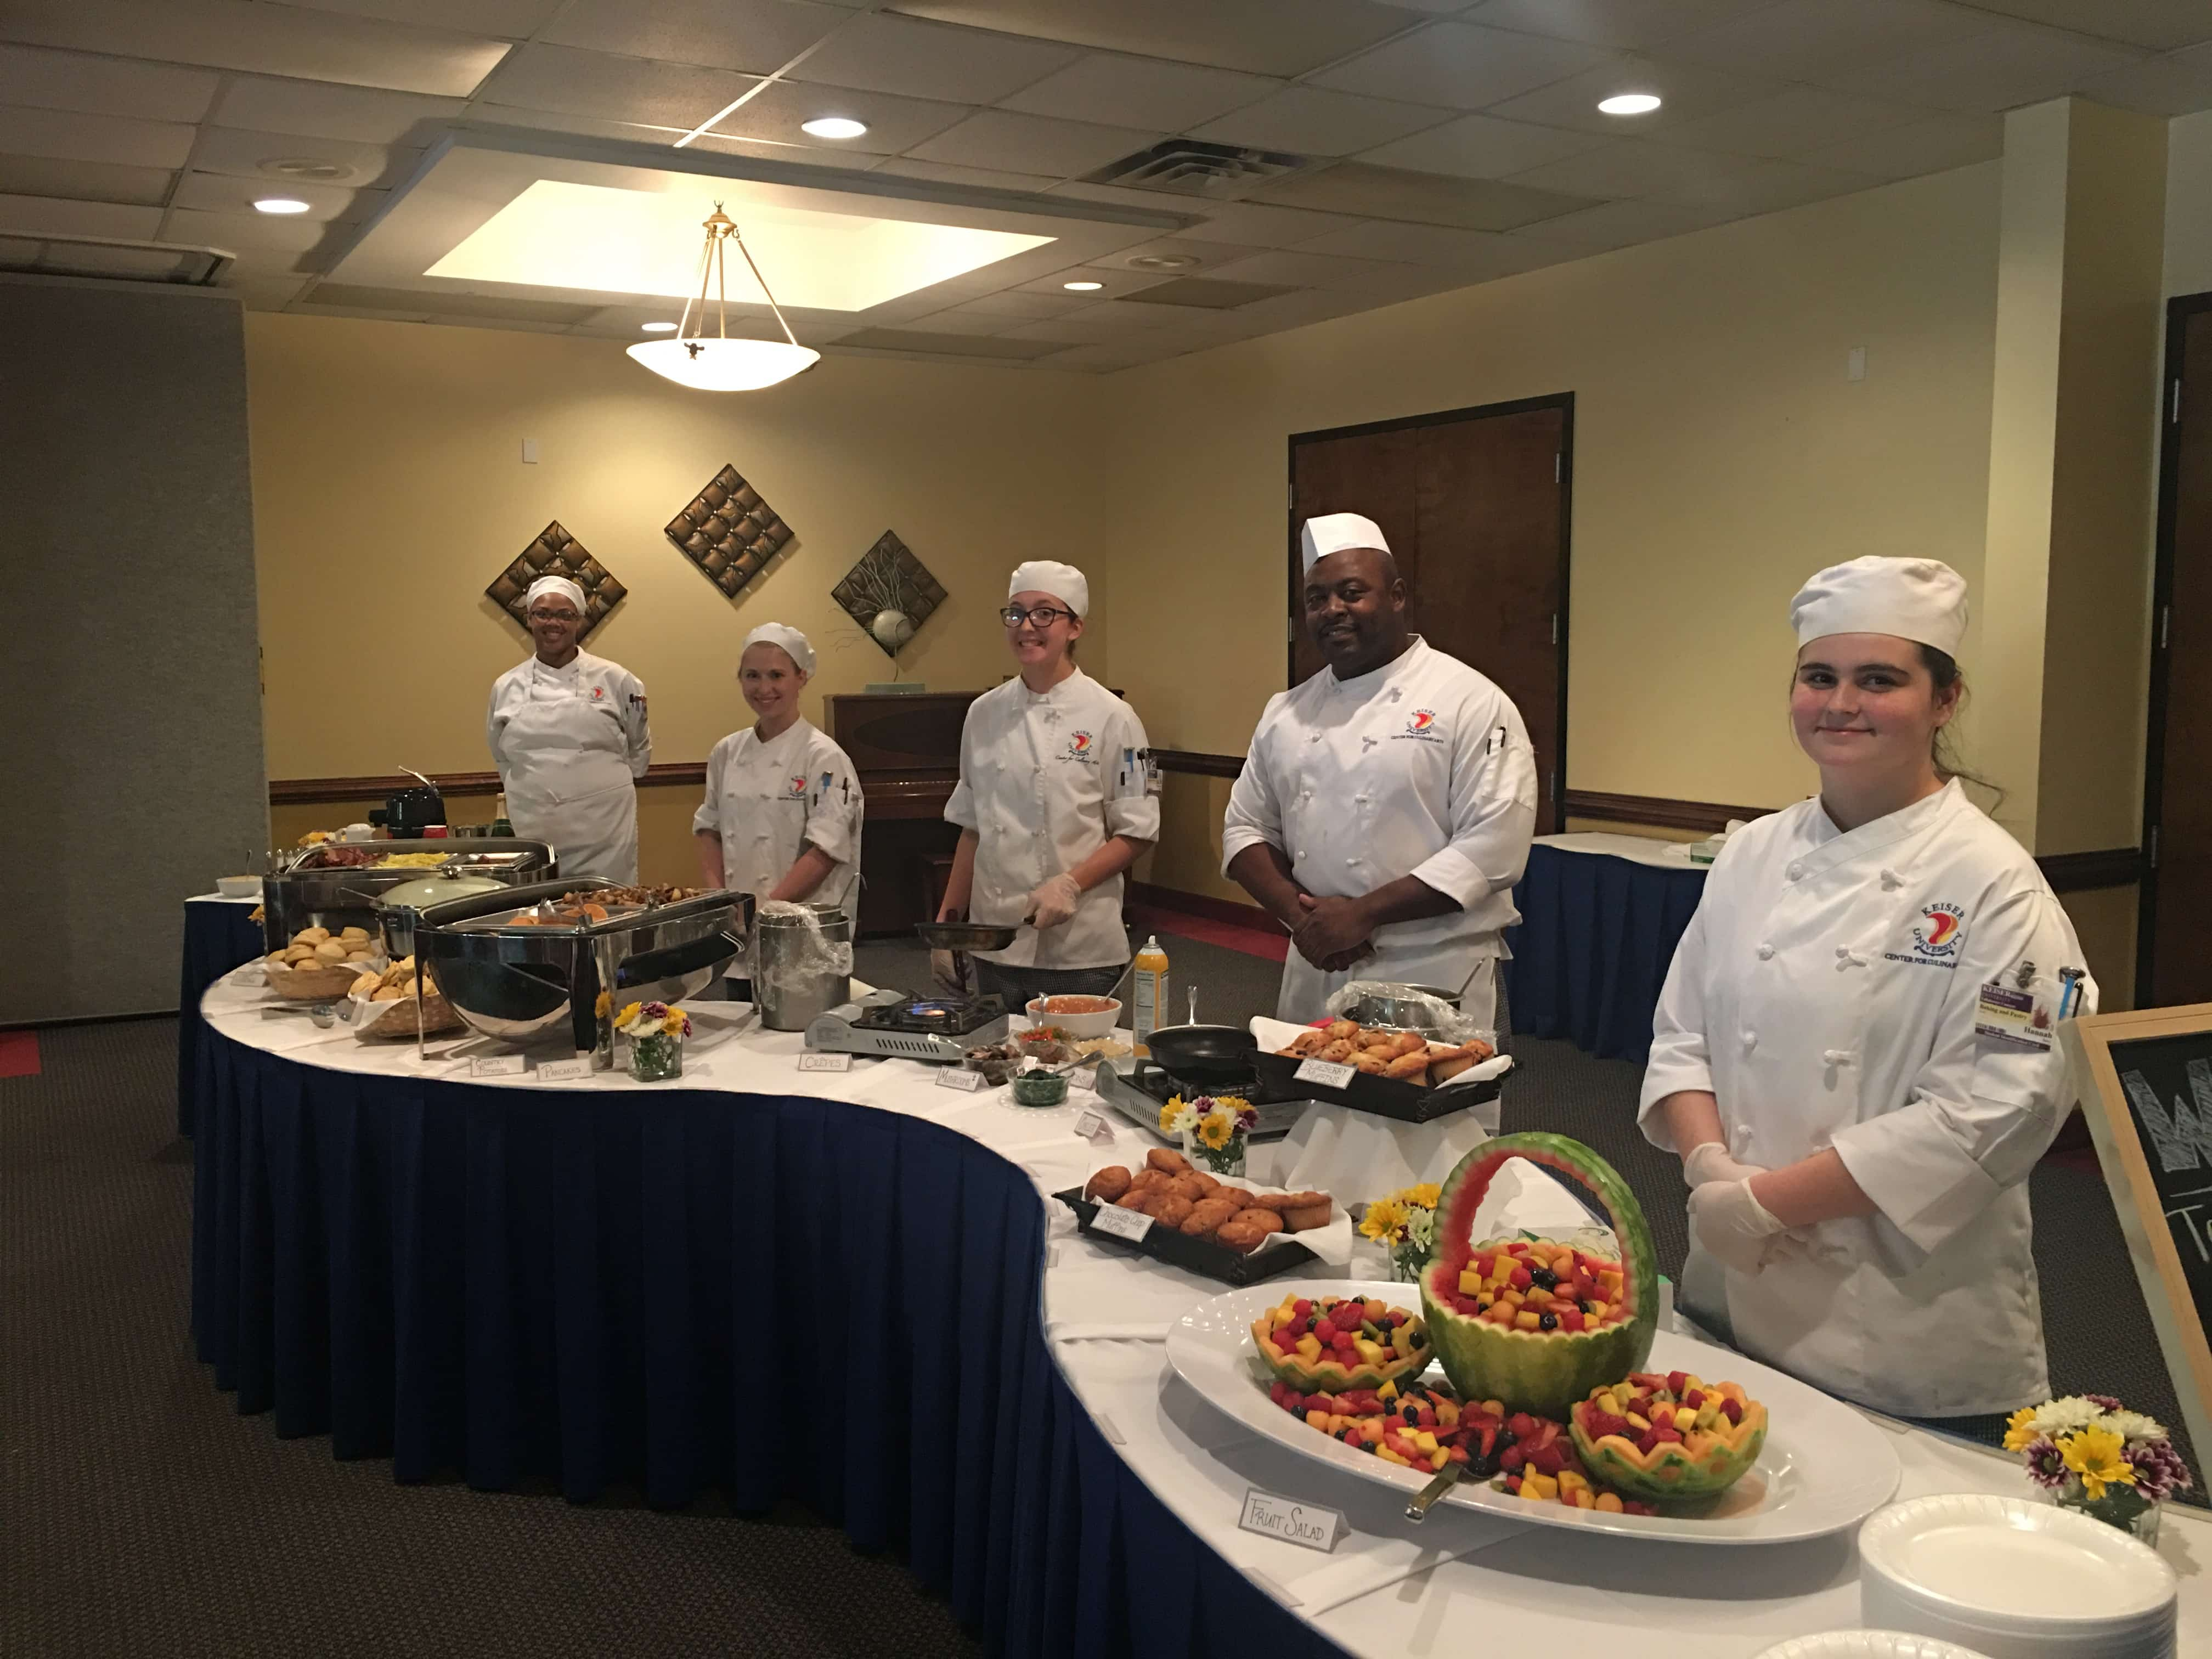 Keiser University Online >> Tallahassee Culinary Students Create and Staff a Full Breakfast Buffet - Keiser University